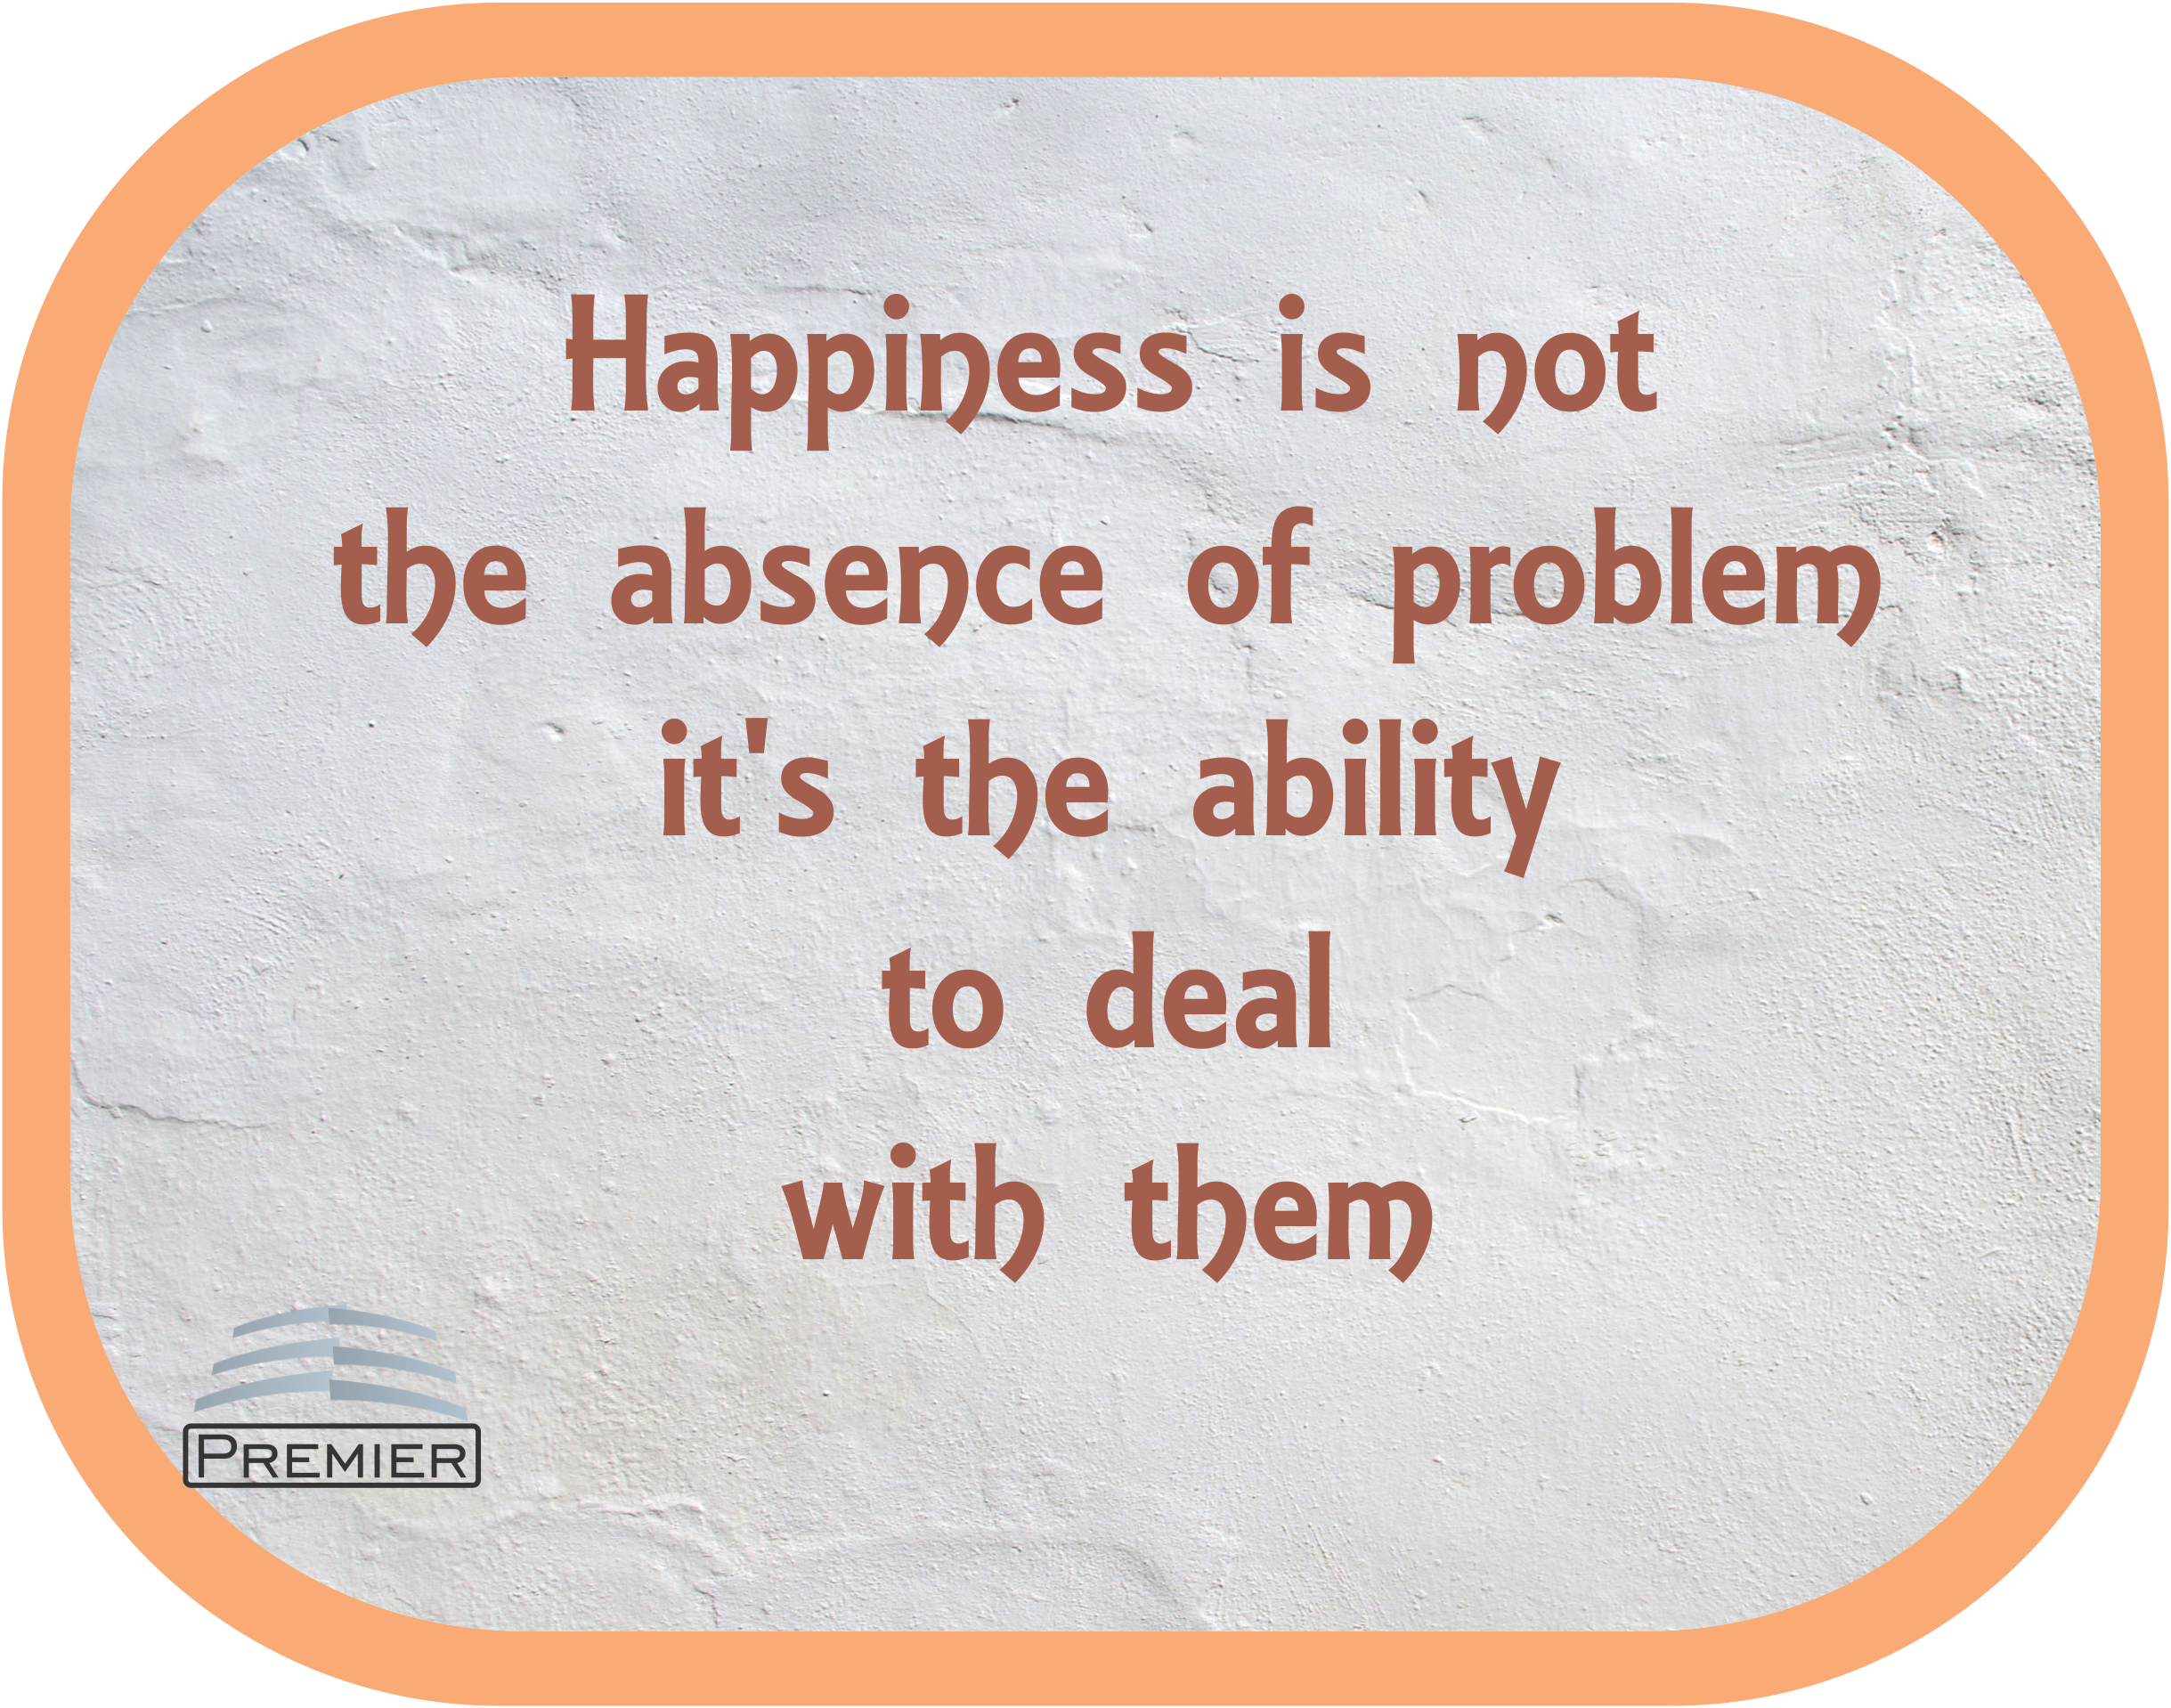 ‪#‎HappyMonday‬ Happiness is not the absence of problem it's the ability to deal with them